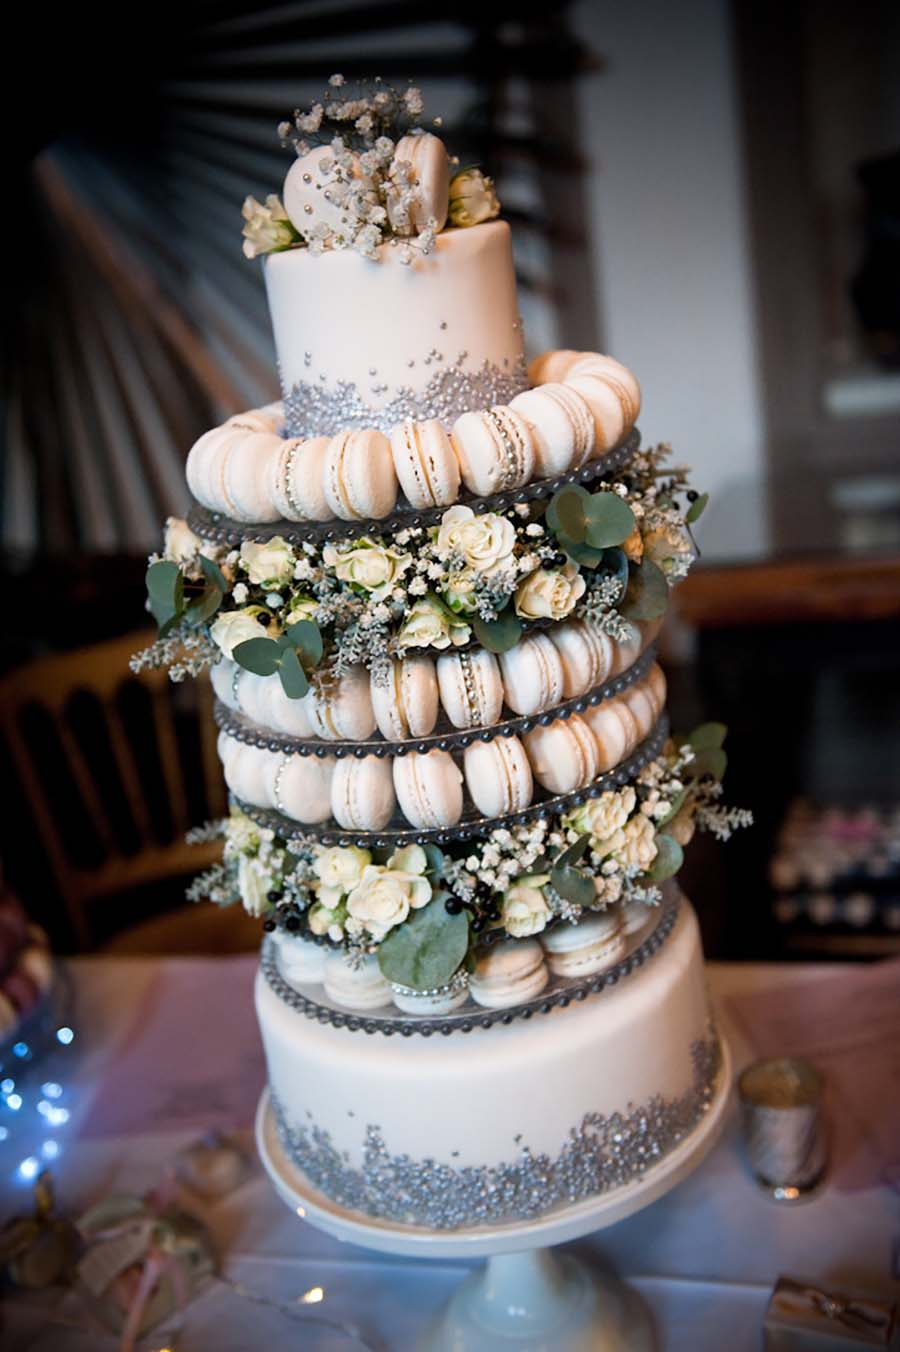 Buckinghams-at-belvoir-castle-wedding-fair-rachael-connerton-photography-70